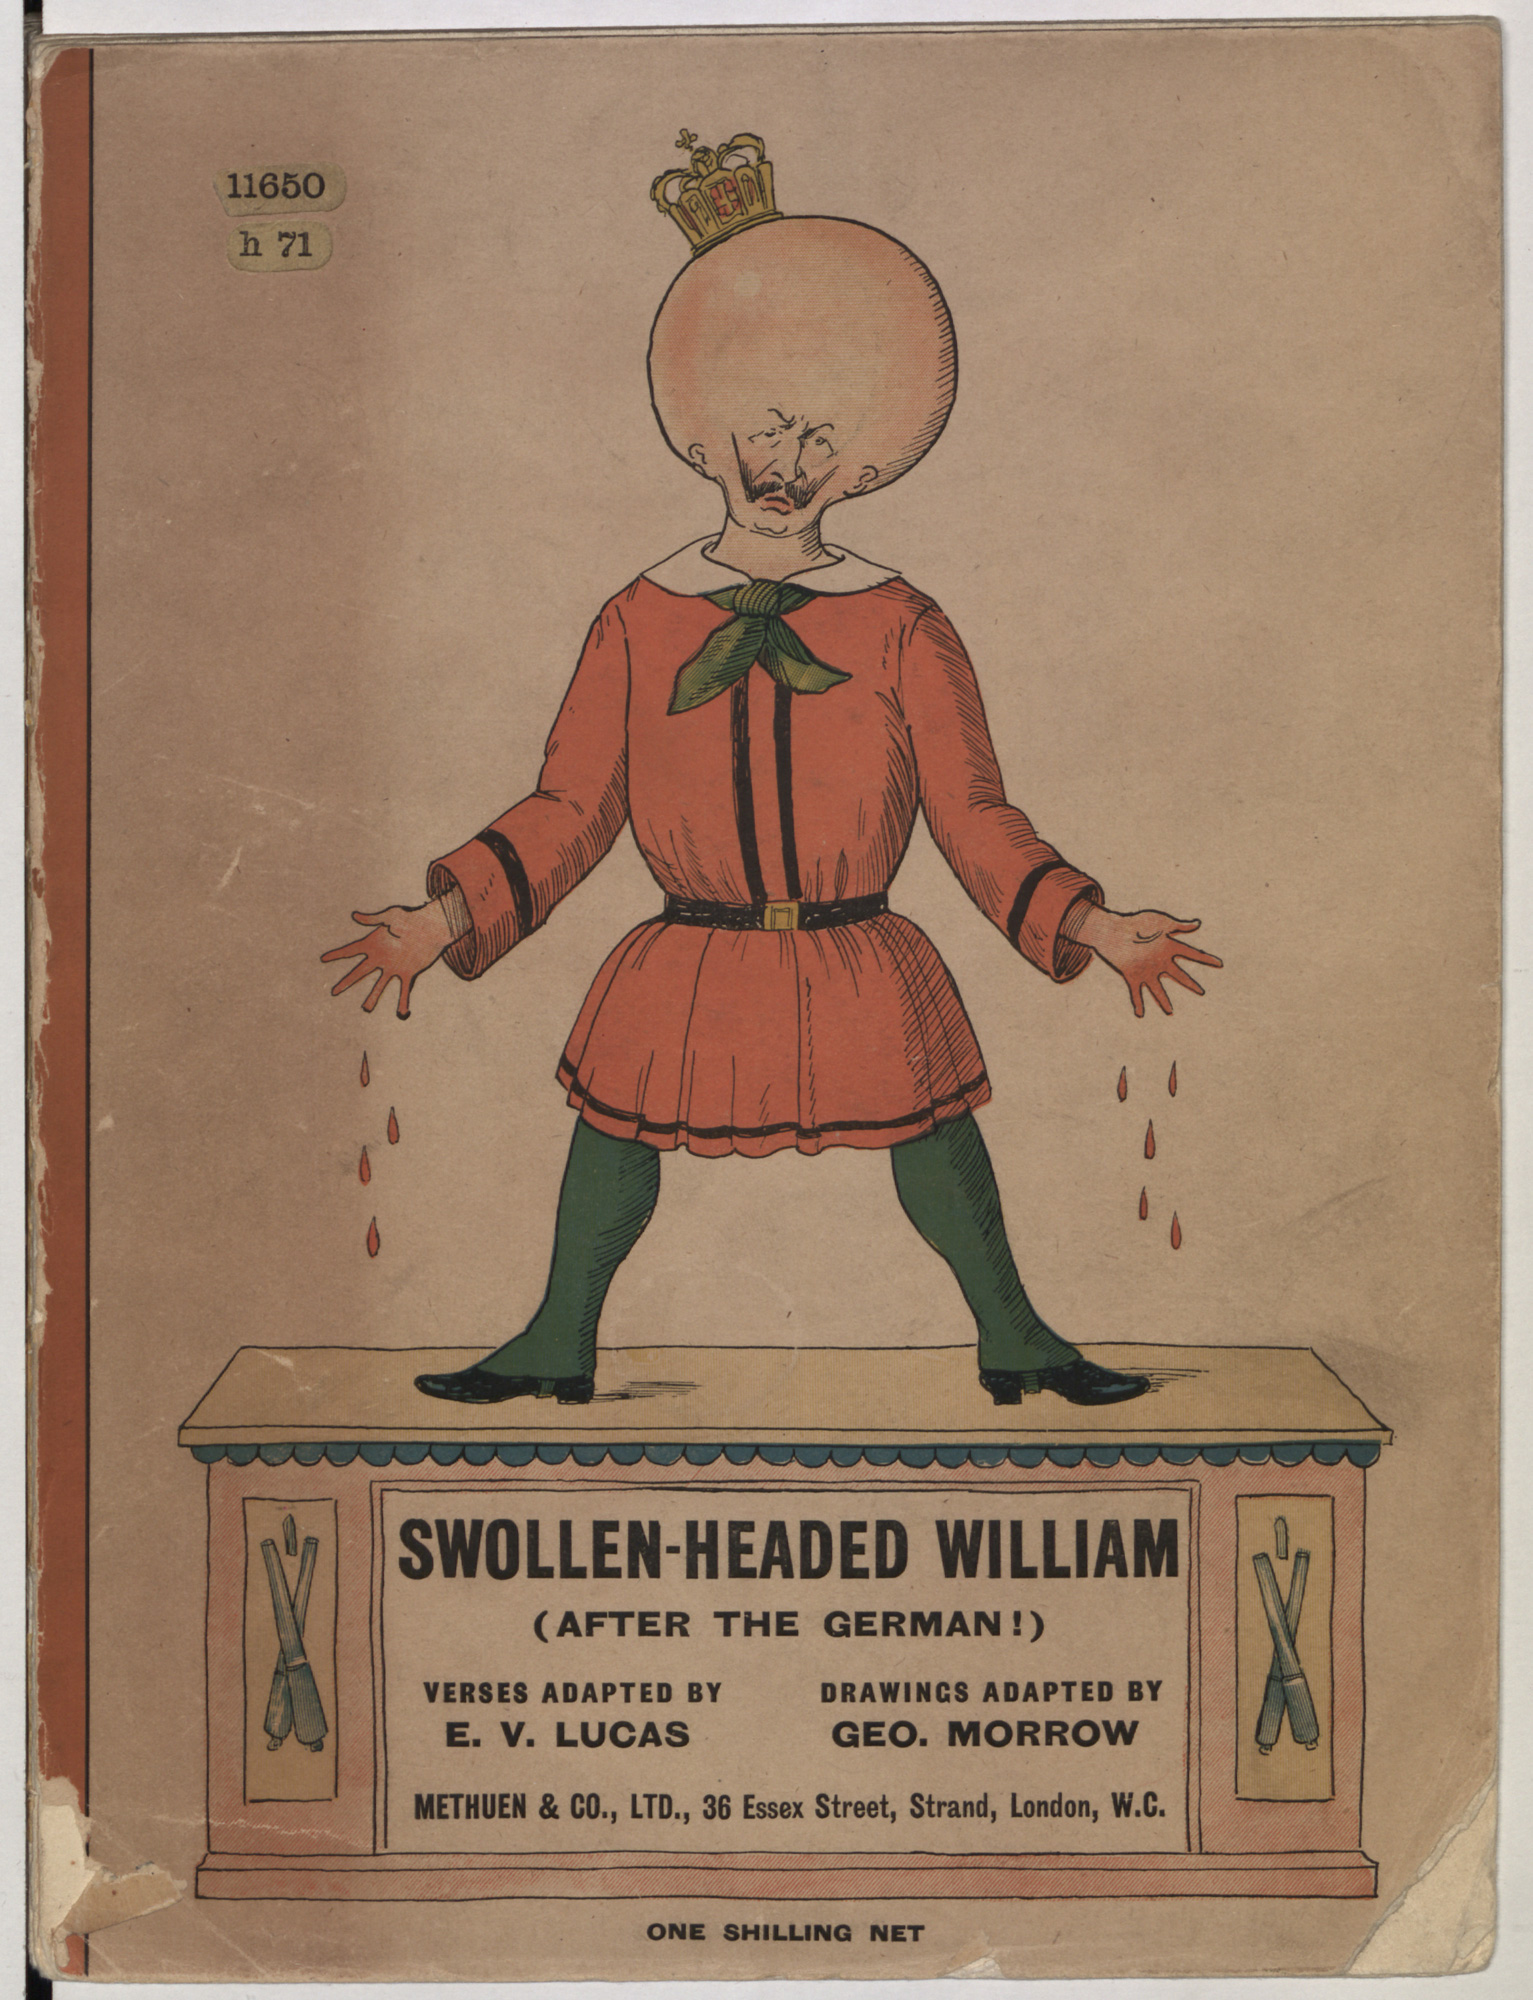 Swollen-headed William (after the German!)